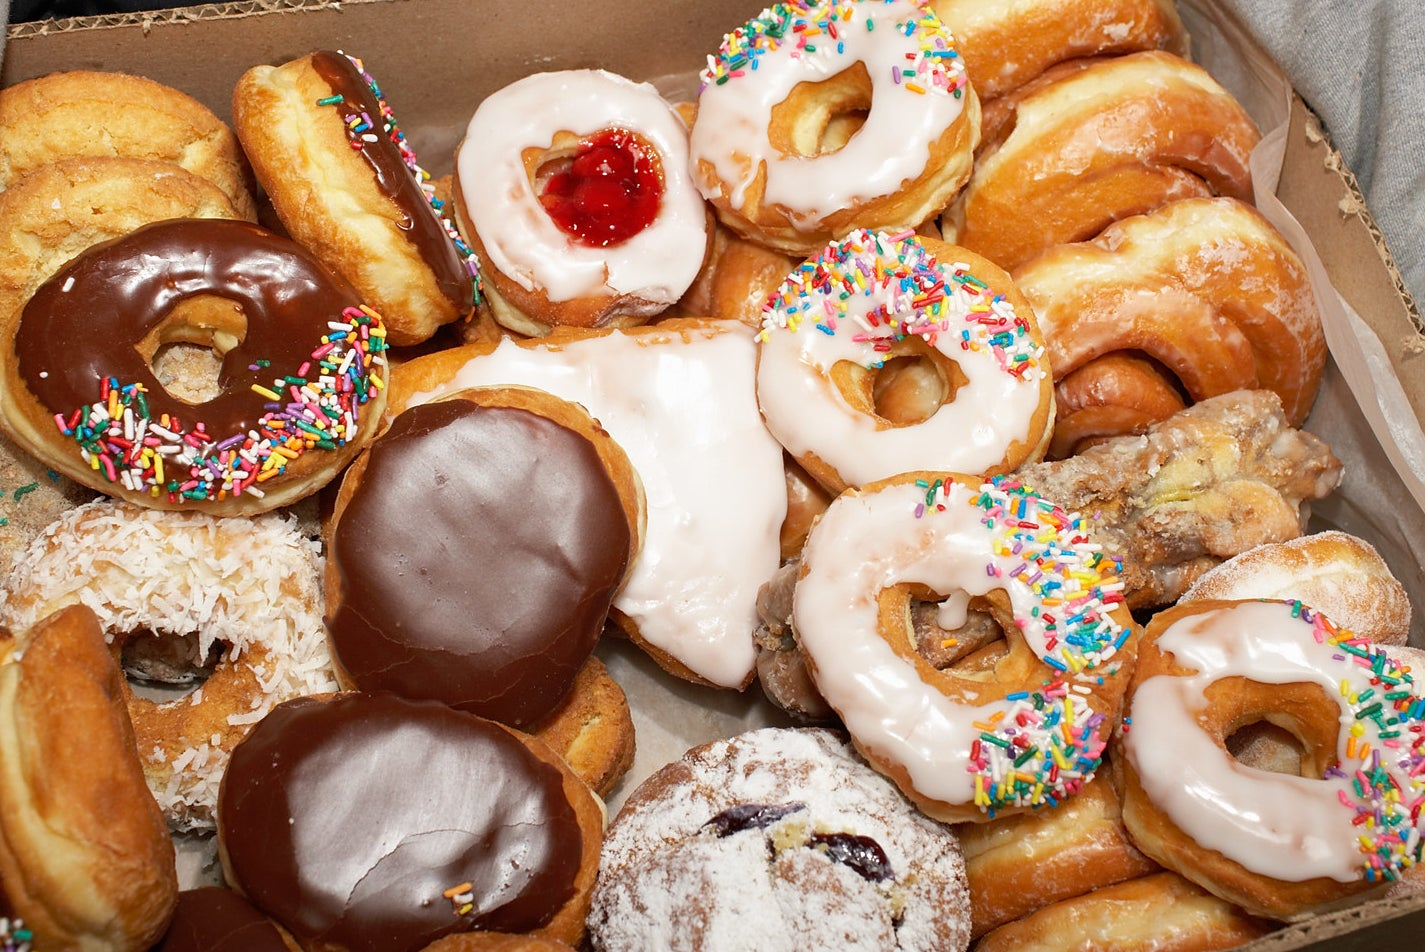 A tray of donuts.